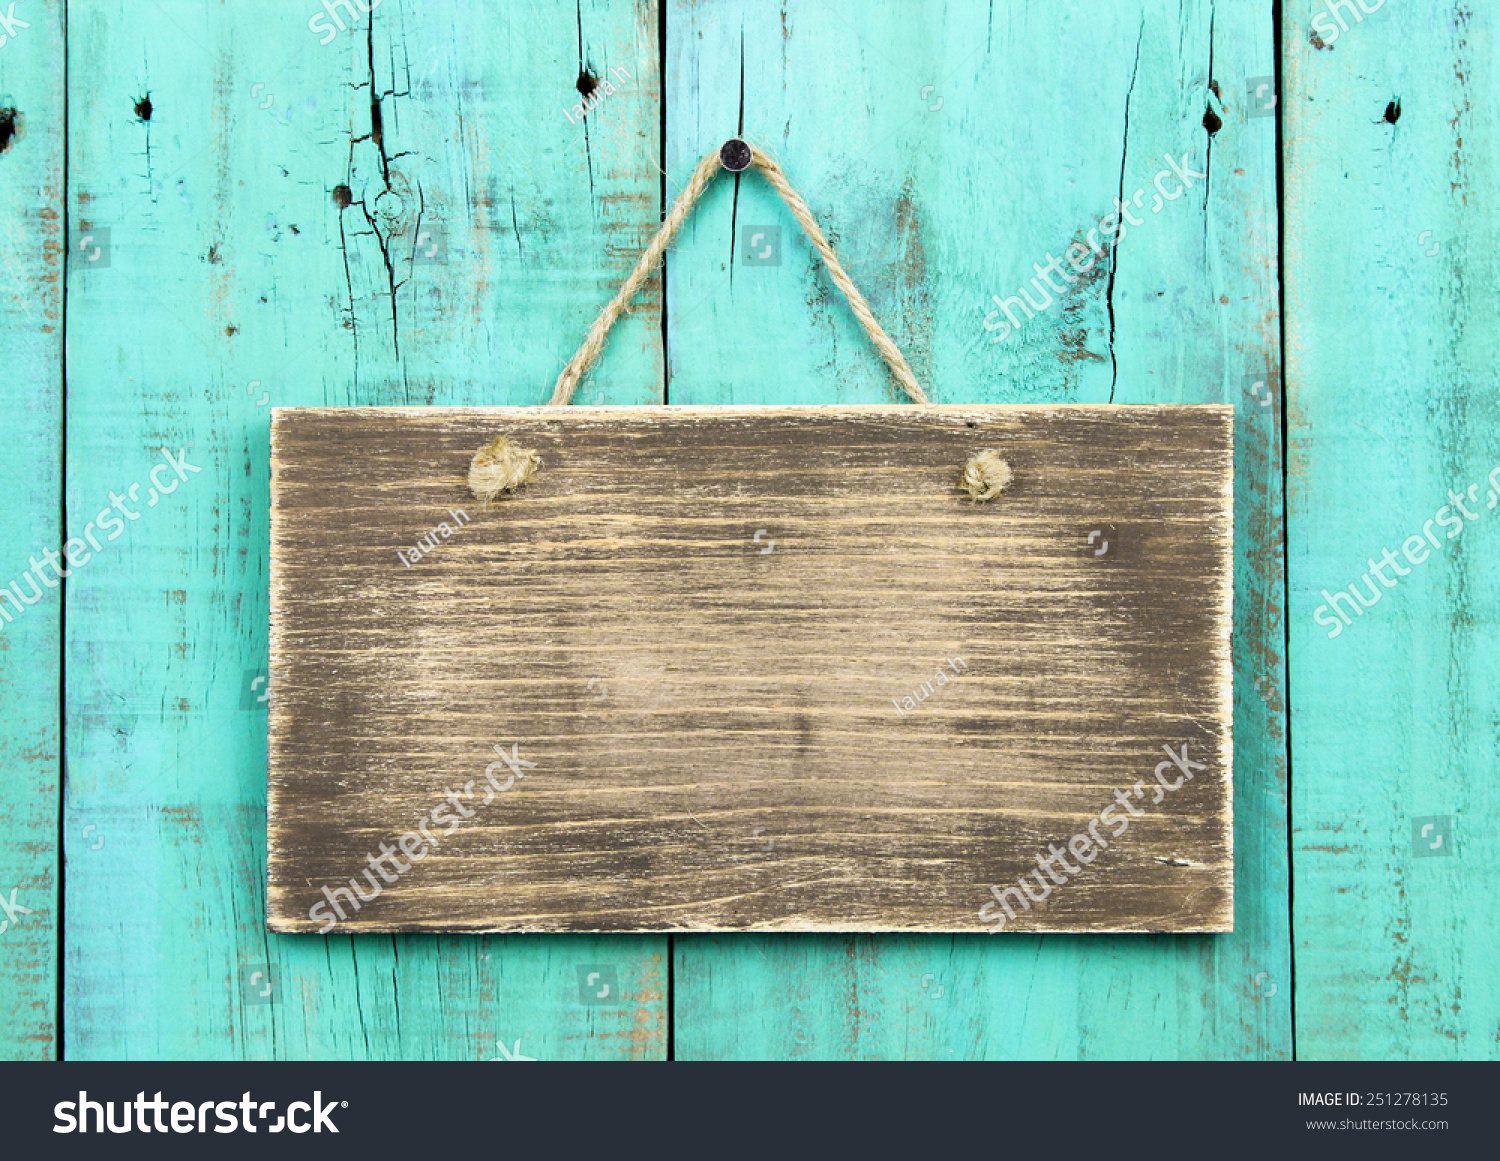 Blank Rustic Wooden Sign Hanging On Washed Out Teal Blue